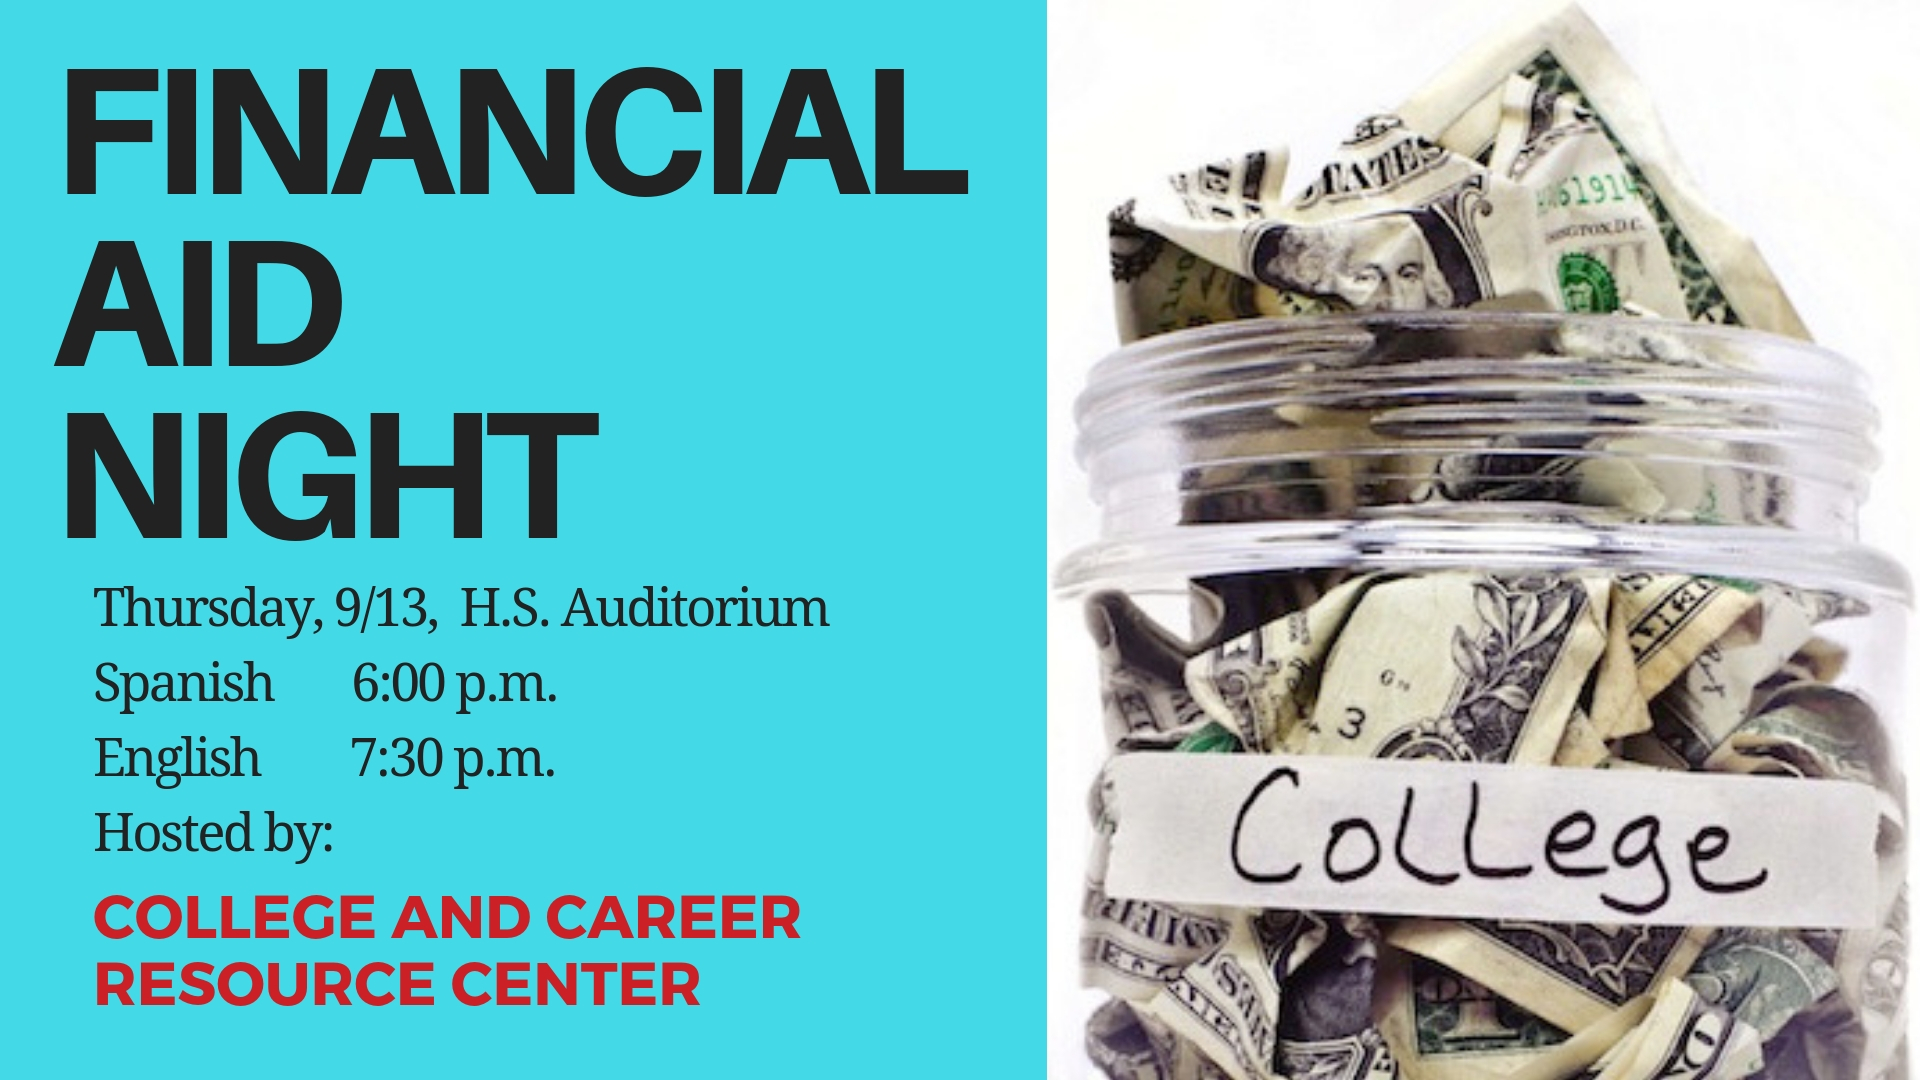 CCRC Financial Aid Night